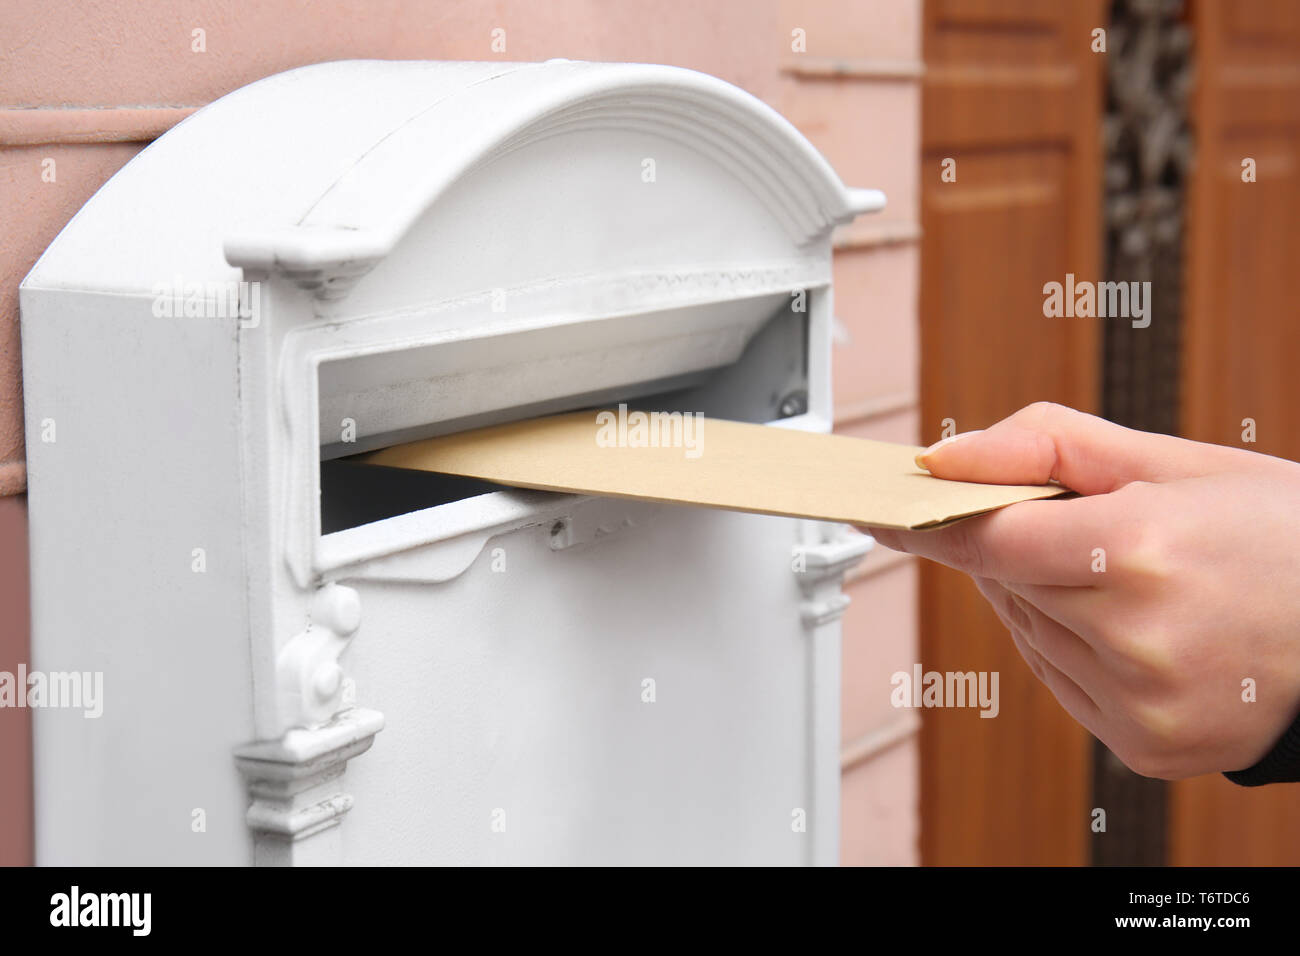 woman putting envelope into